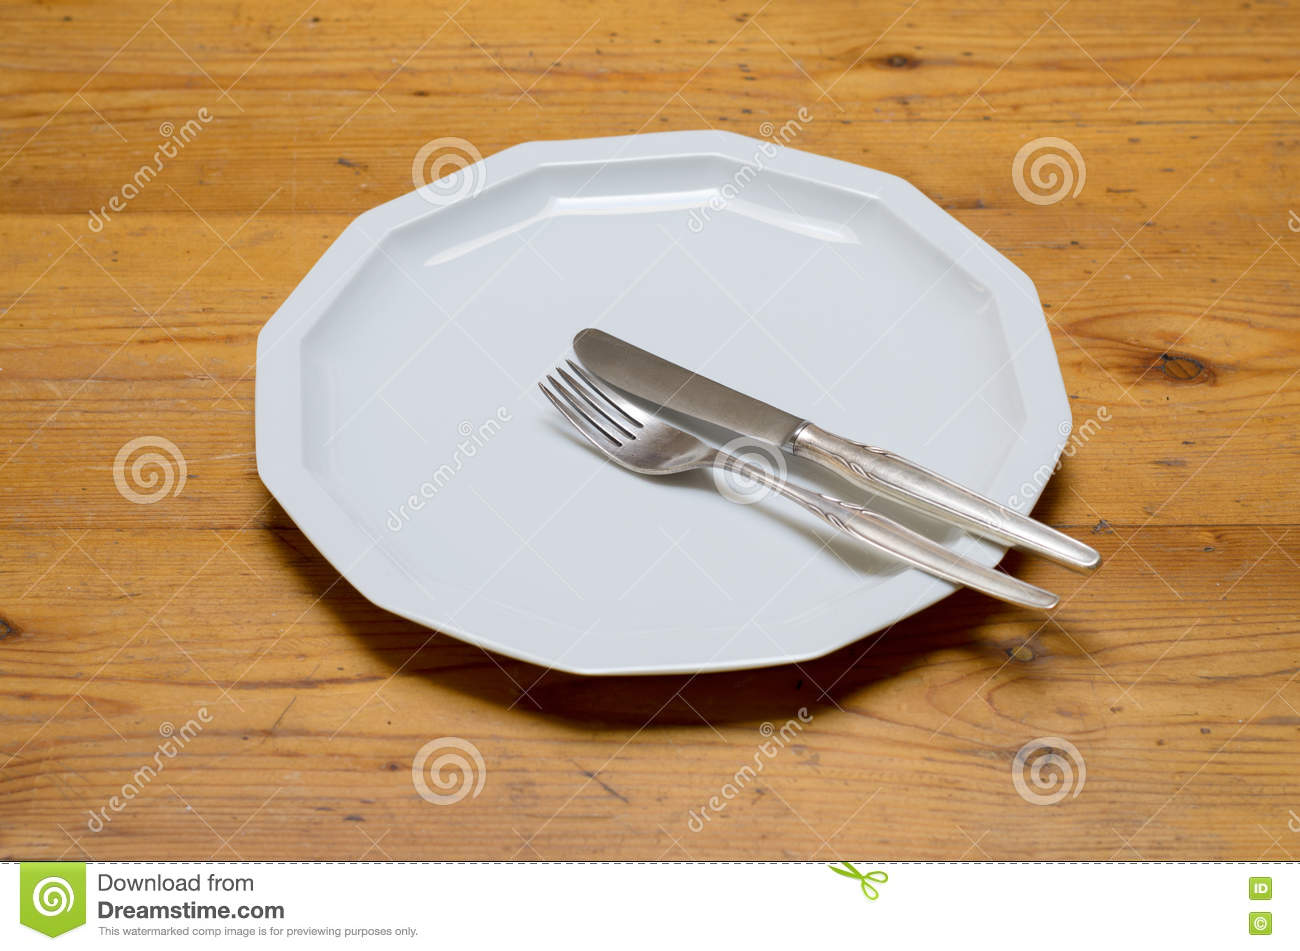 An empty white dish with knife and fork on a table - Empty White Dinner Plate With Knife And Fork